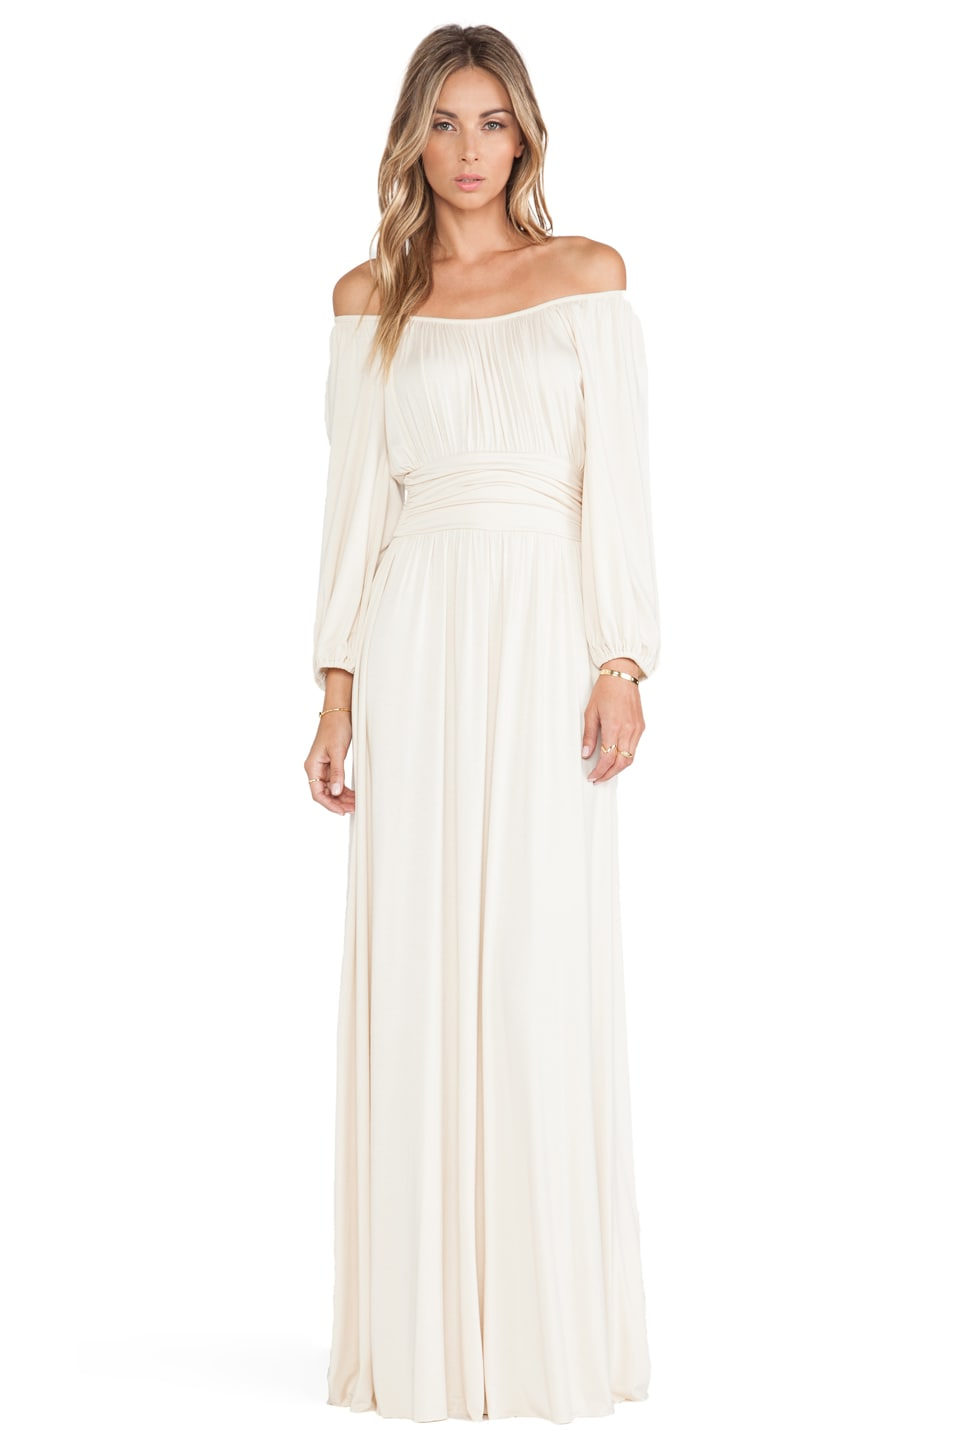 Rachel Pally Willow Dress in Cream